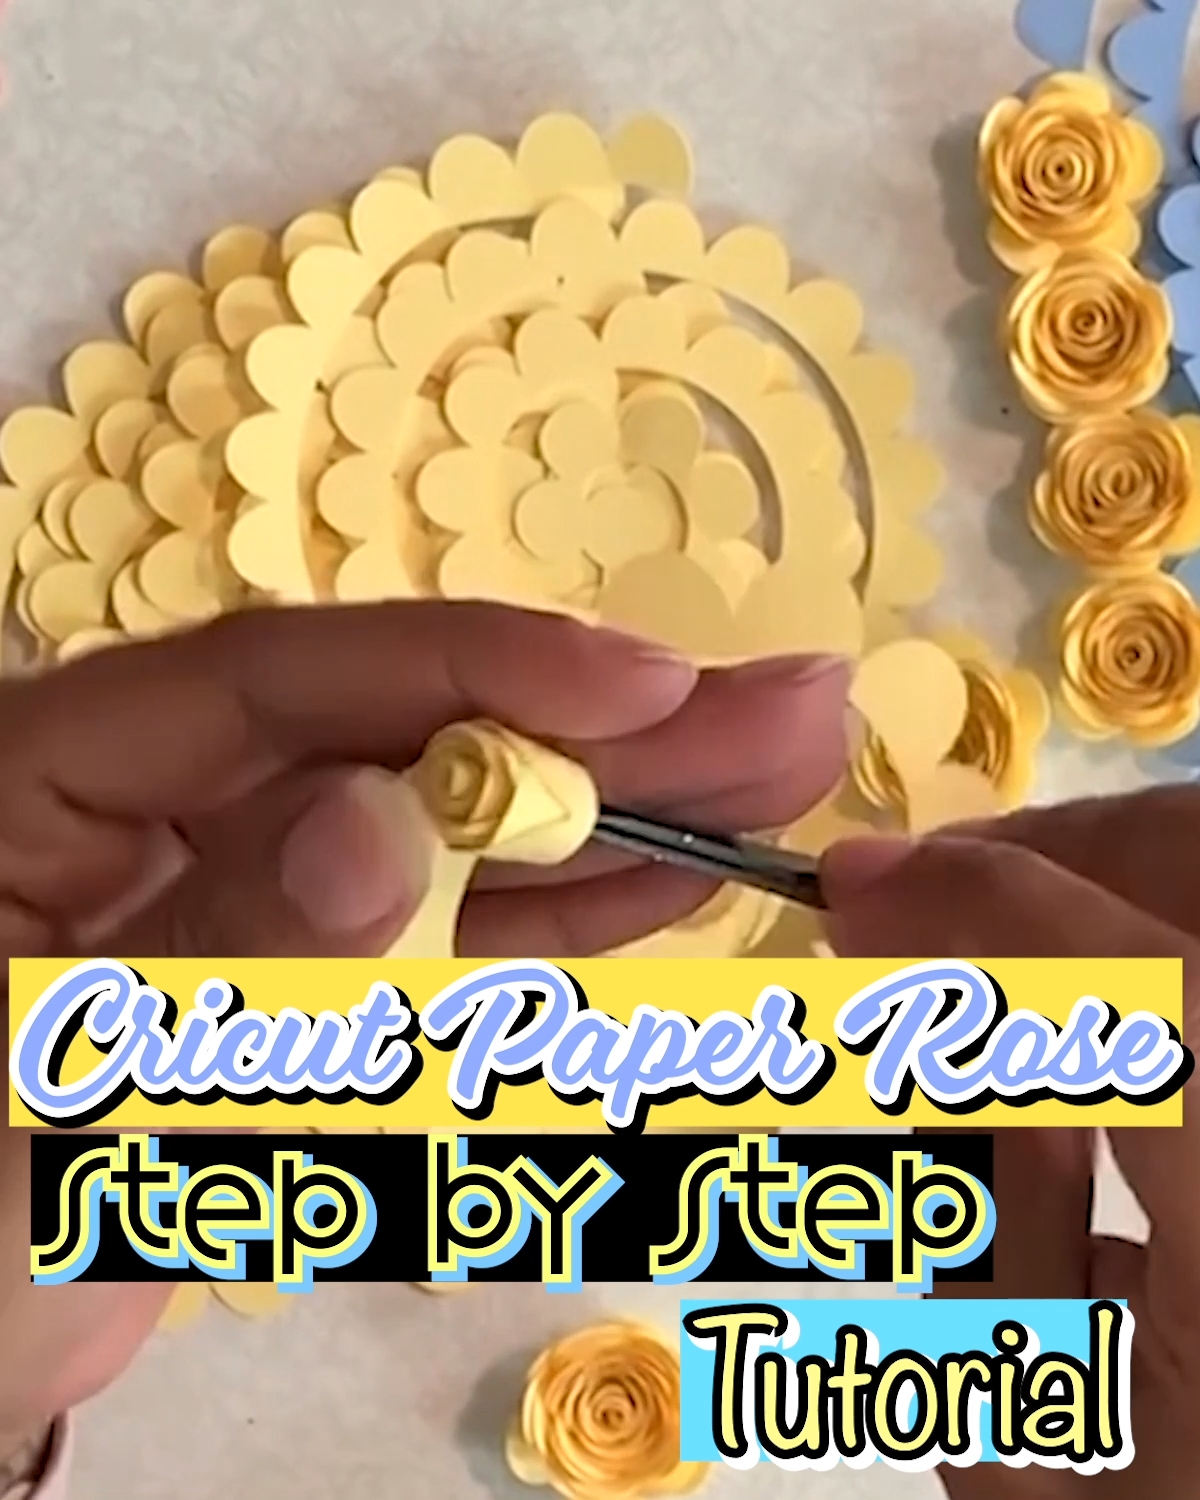 Cricut Paper Rose Step by Step Tutorial